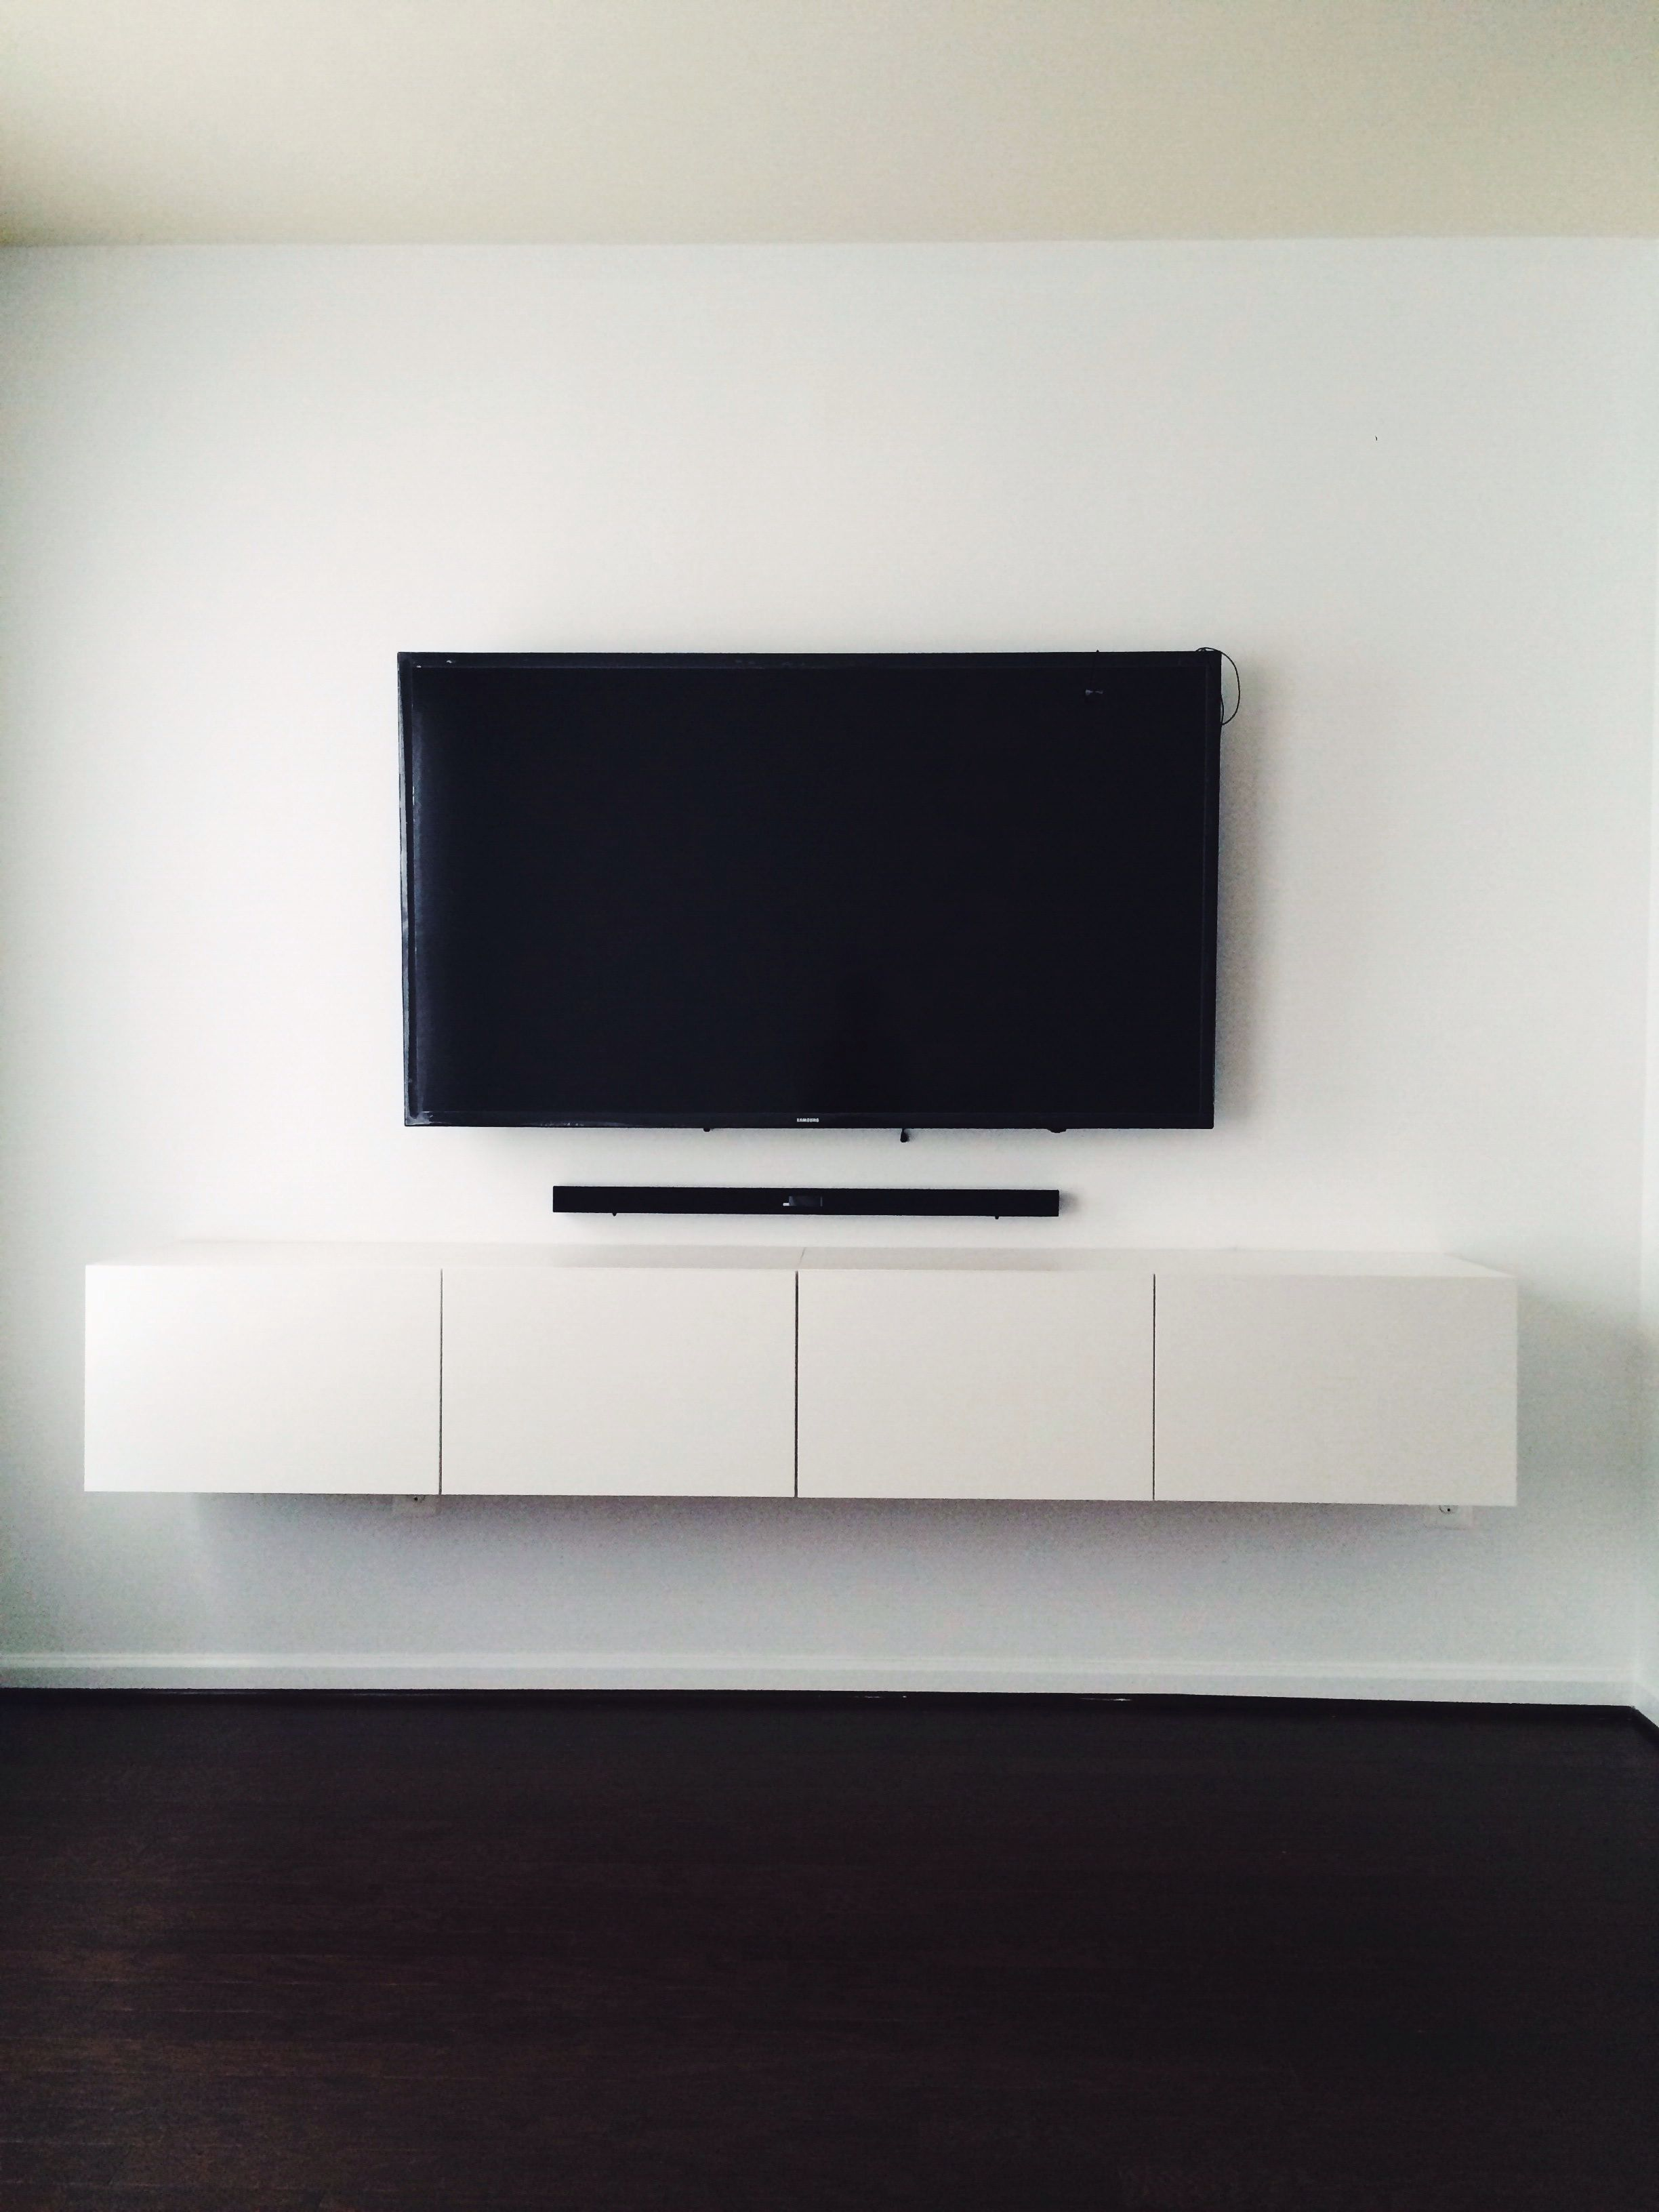 Ikea Besta Media Console Mounted Tv With Hidden Wires Now That S Clean Wall Mount Tv Stand Wall Mounted Tv Tv Wall Shelves